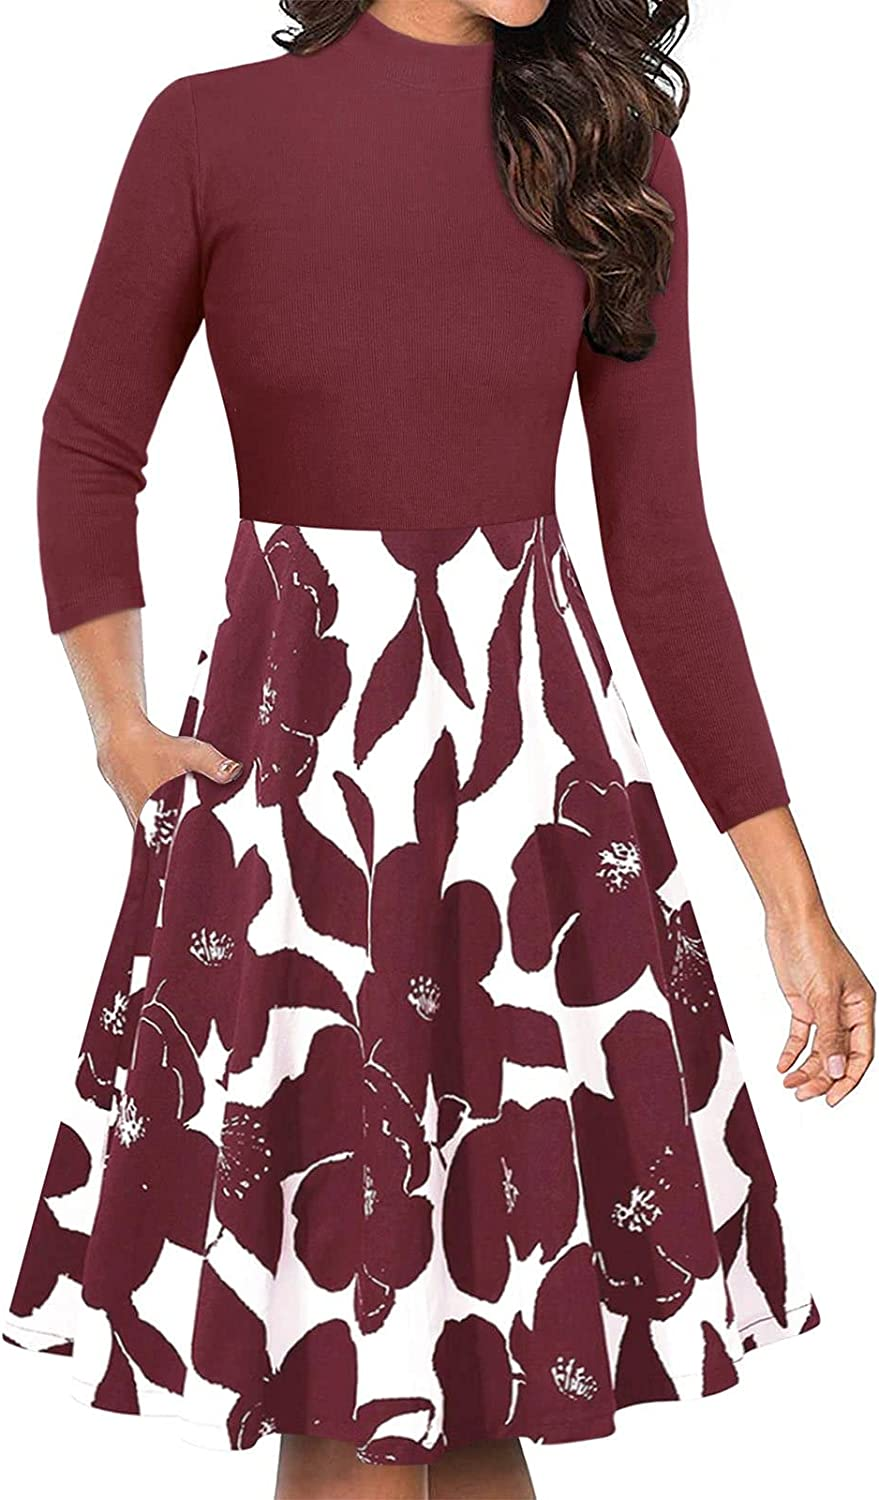 Moyabo Women's Turtleneck 3/4 Sleeve Floral Flared A-Line Swing Casual Party Dresses with Pockets